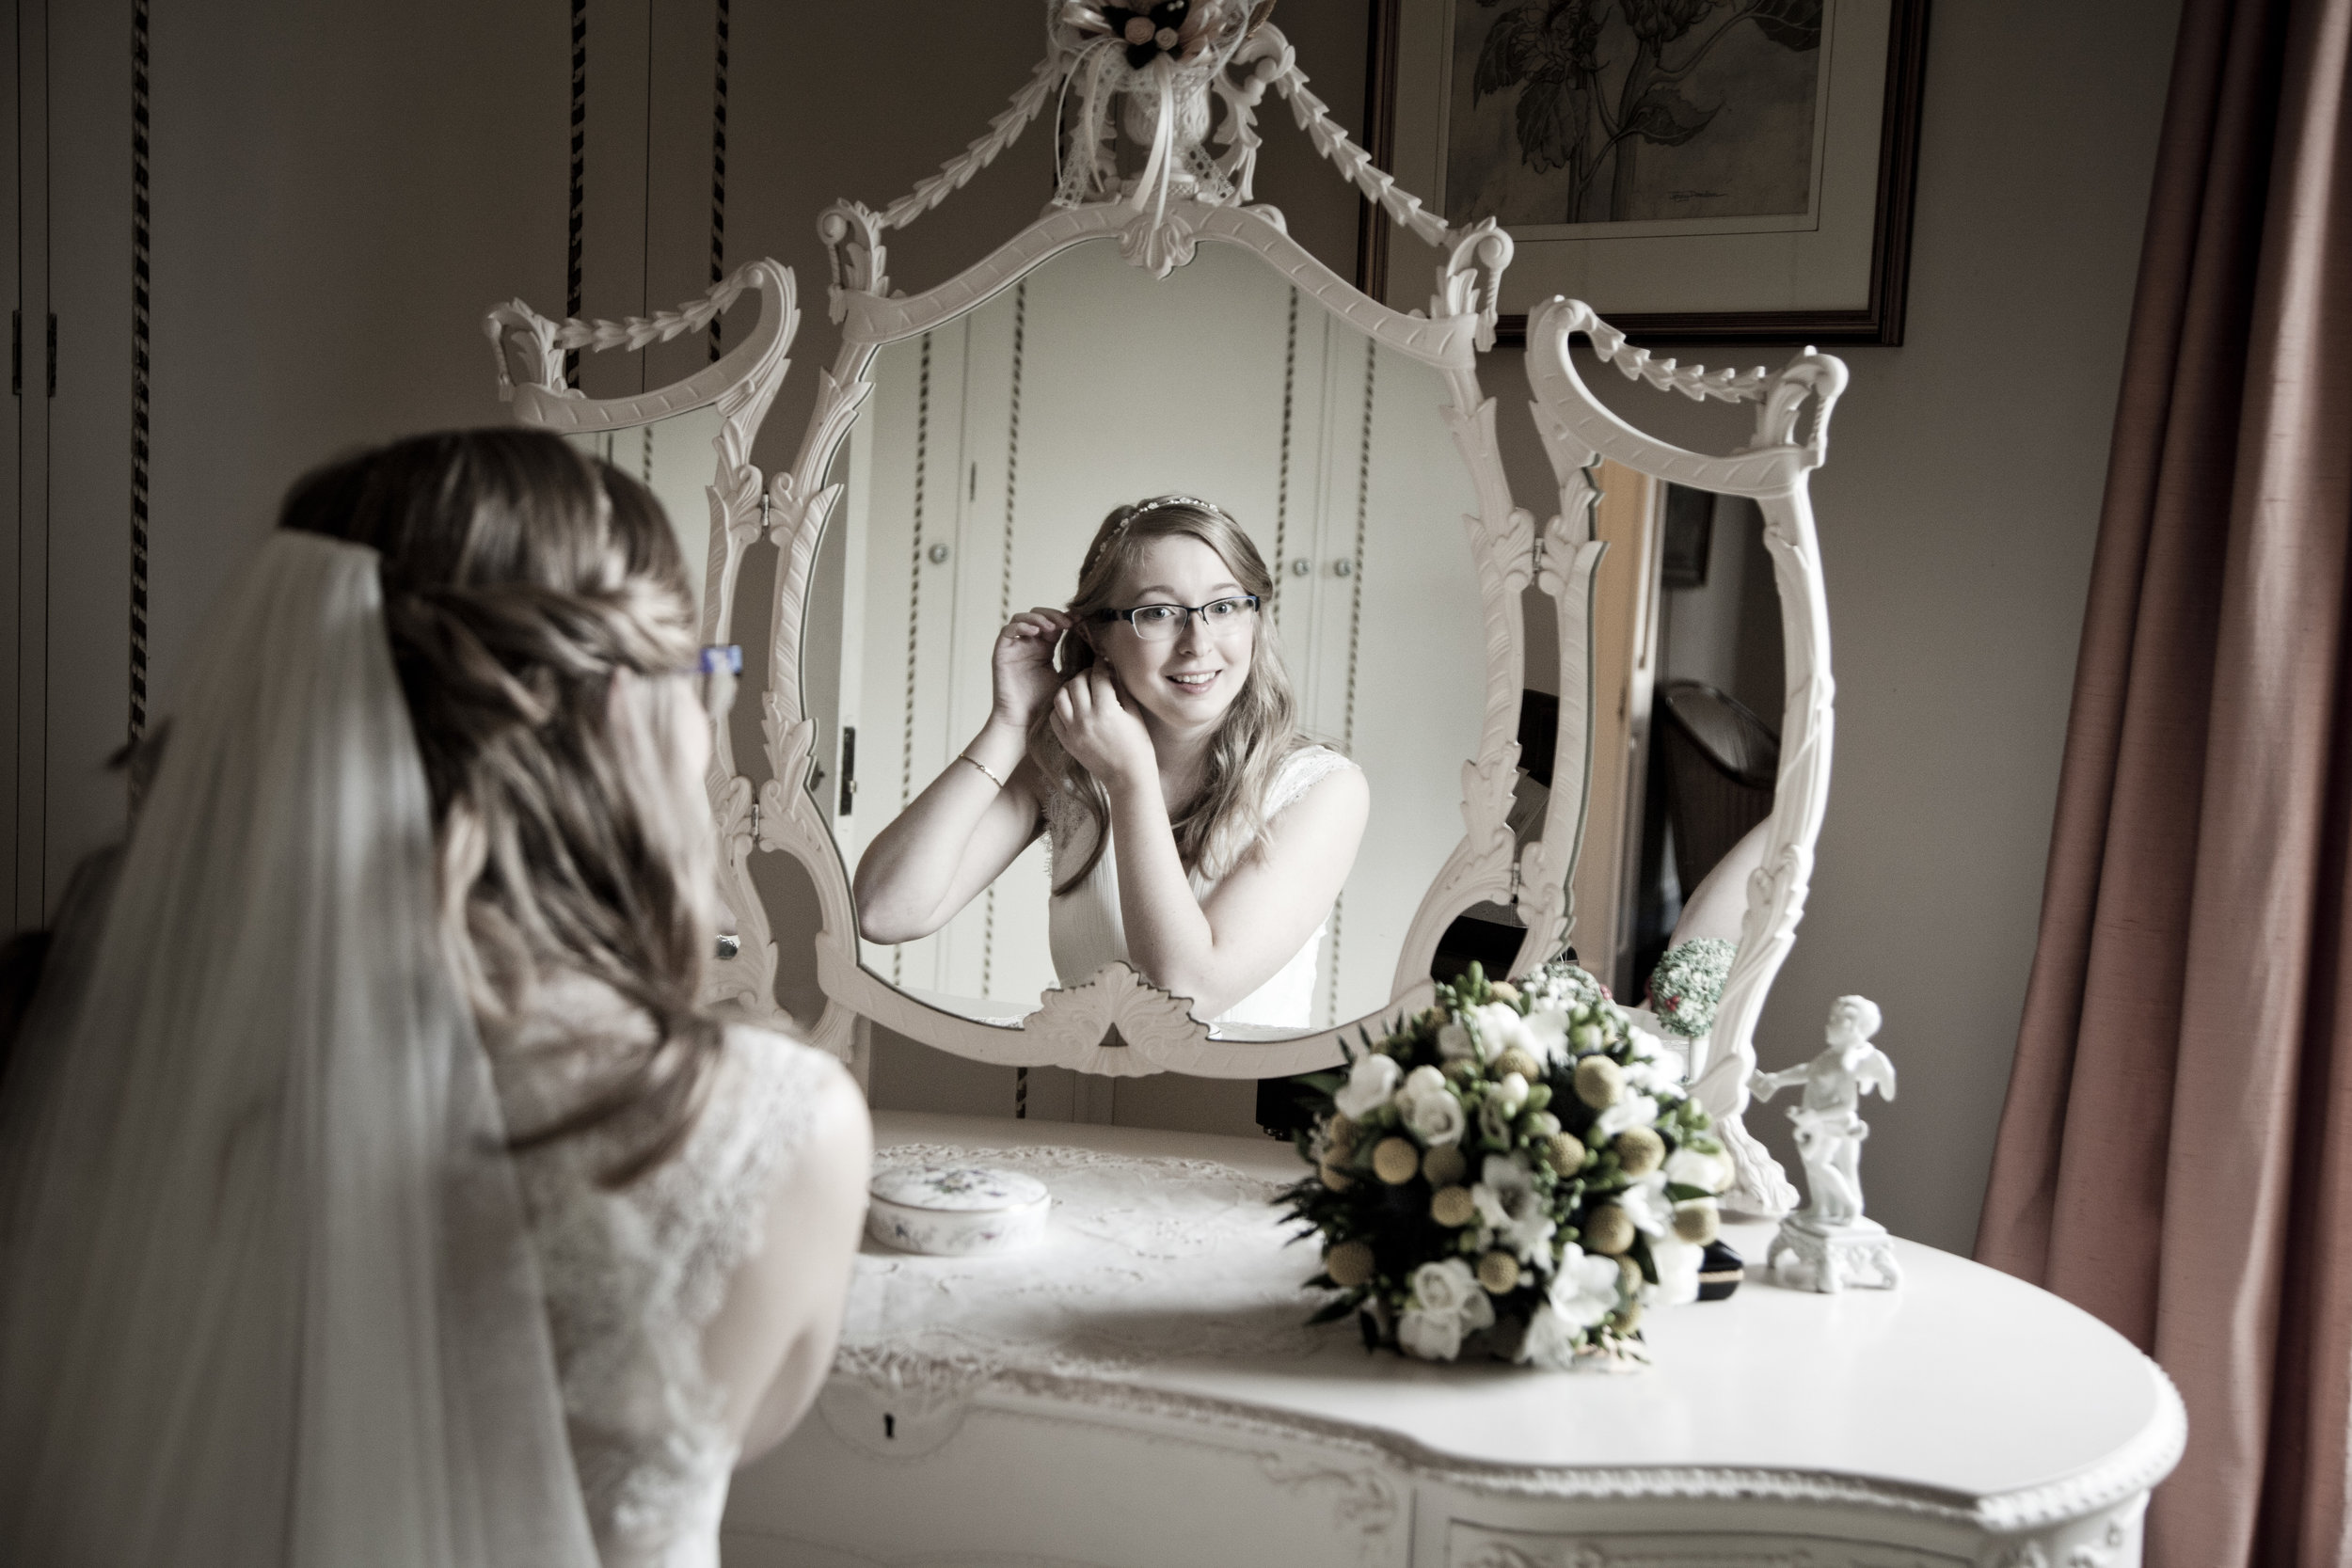 Bride Getting Ready on Her Wedding Day